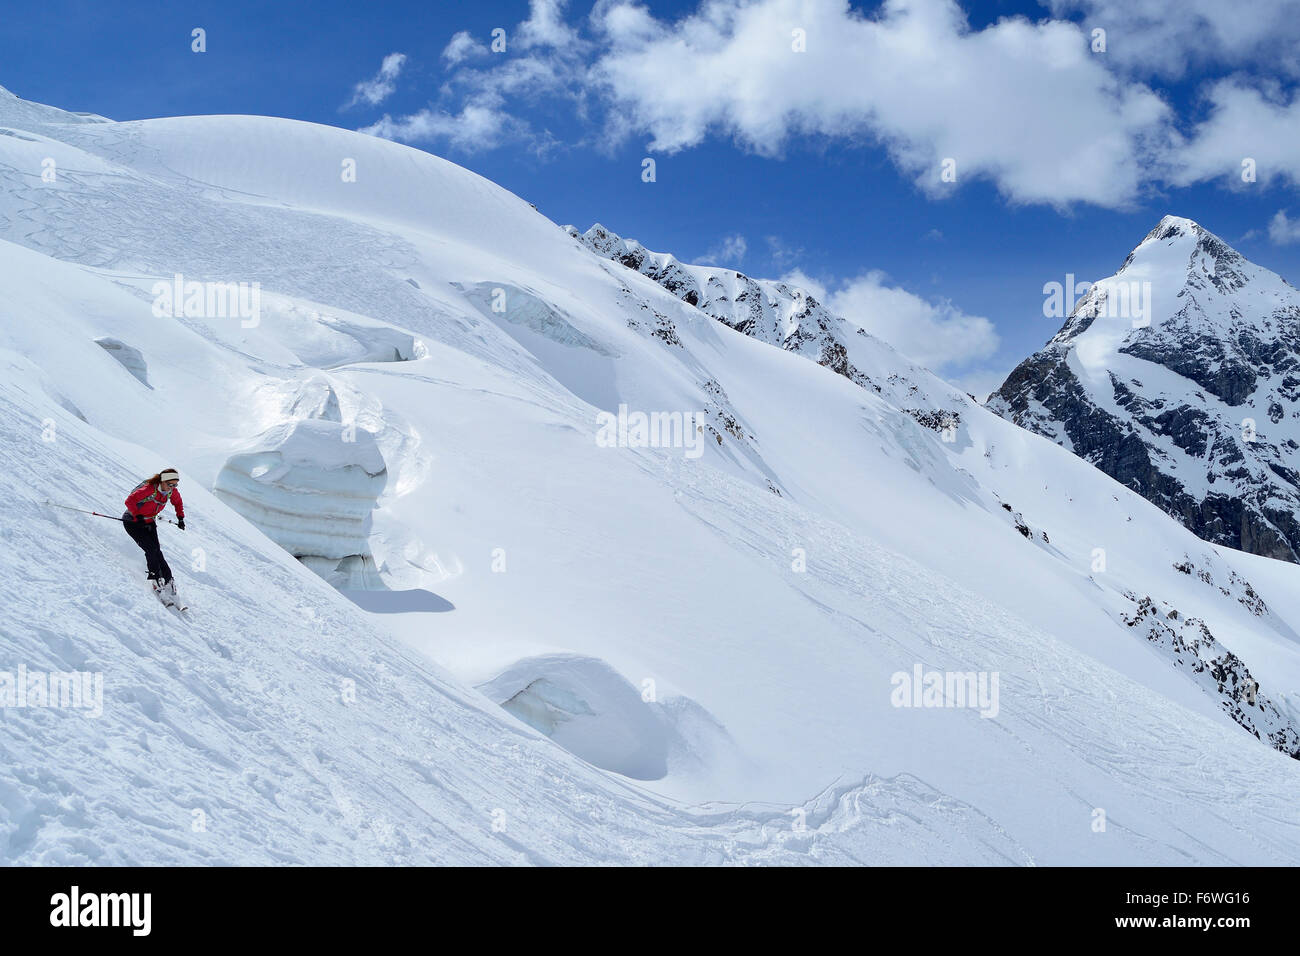 Female backcountry skier downhill skiing in front of Koenigspitze, Monte Cevedale, Ortler range, South Tyrol, Italy - Stock Image